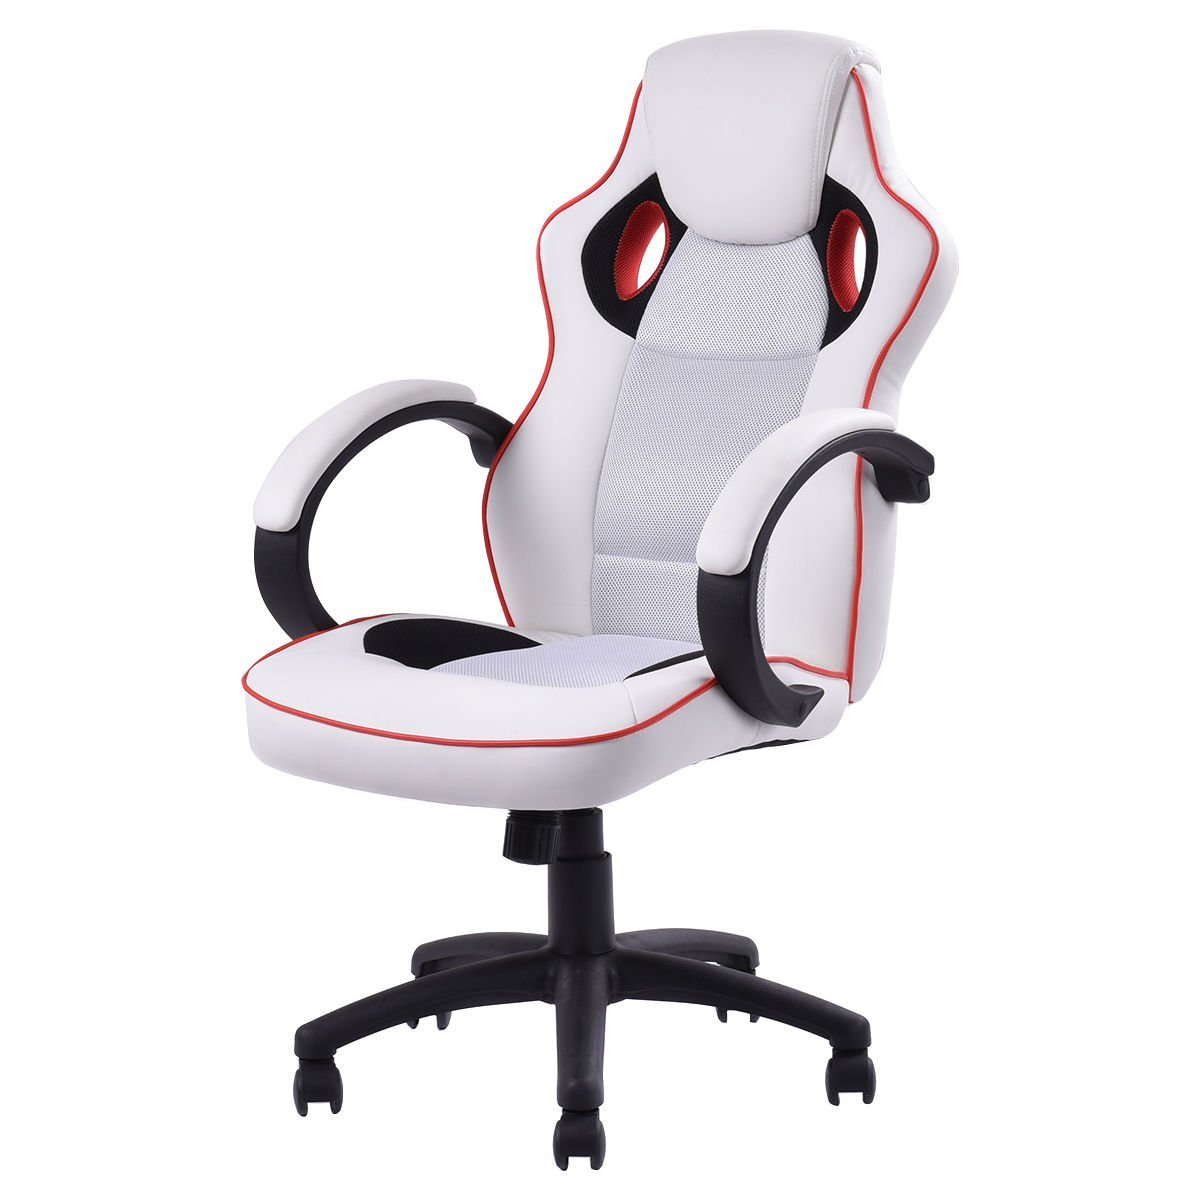 reclining gaming chair carex transport ⭐️ best pc under $100 ⋆ cheap reviews™